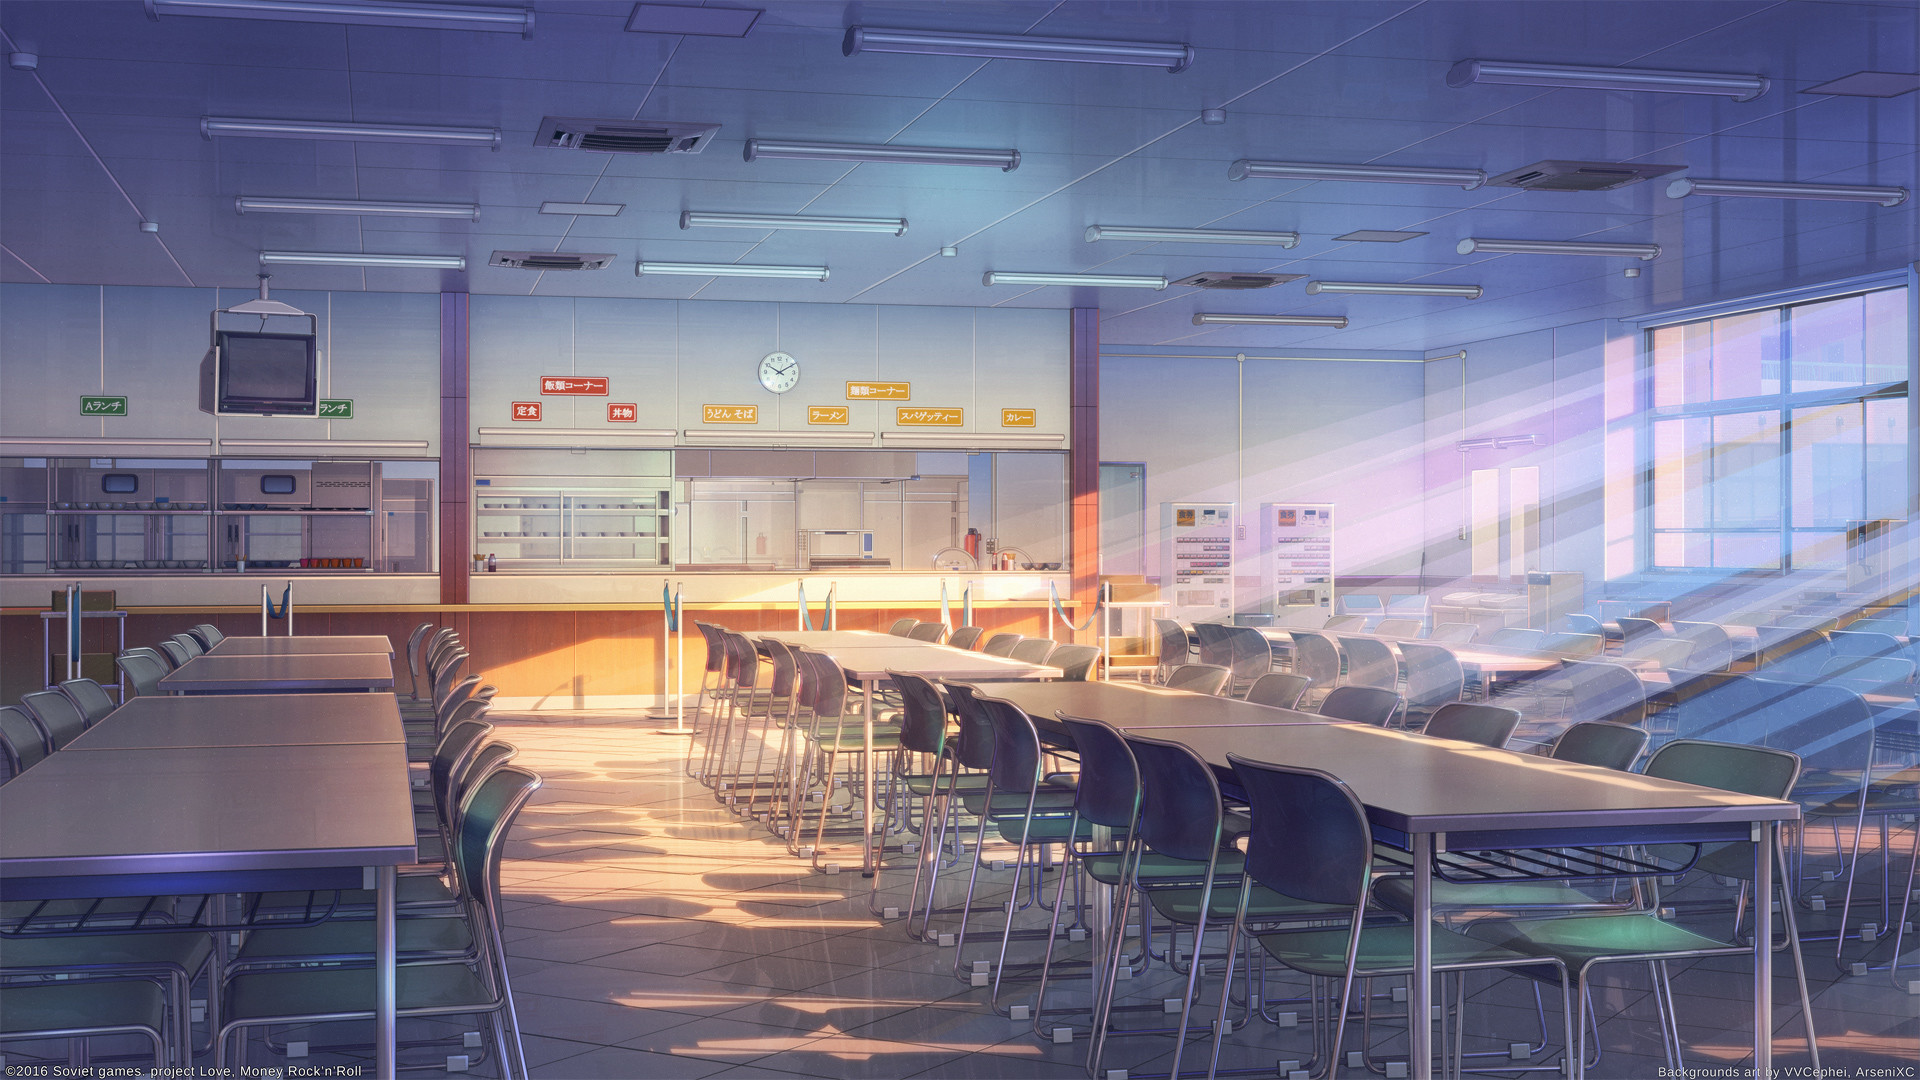 1920x1080 School Anime Scenery Background Wallpaper | Resources: Wallpapers -  Illustrated | Pinterest | Anime scenery, Scenery and Anime